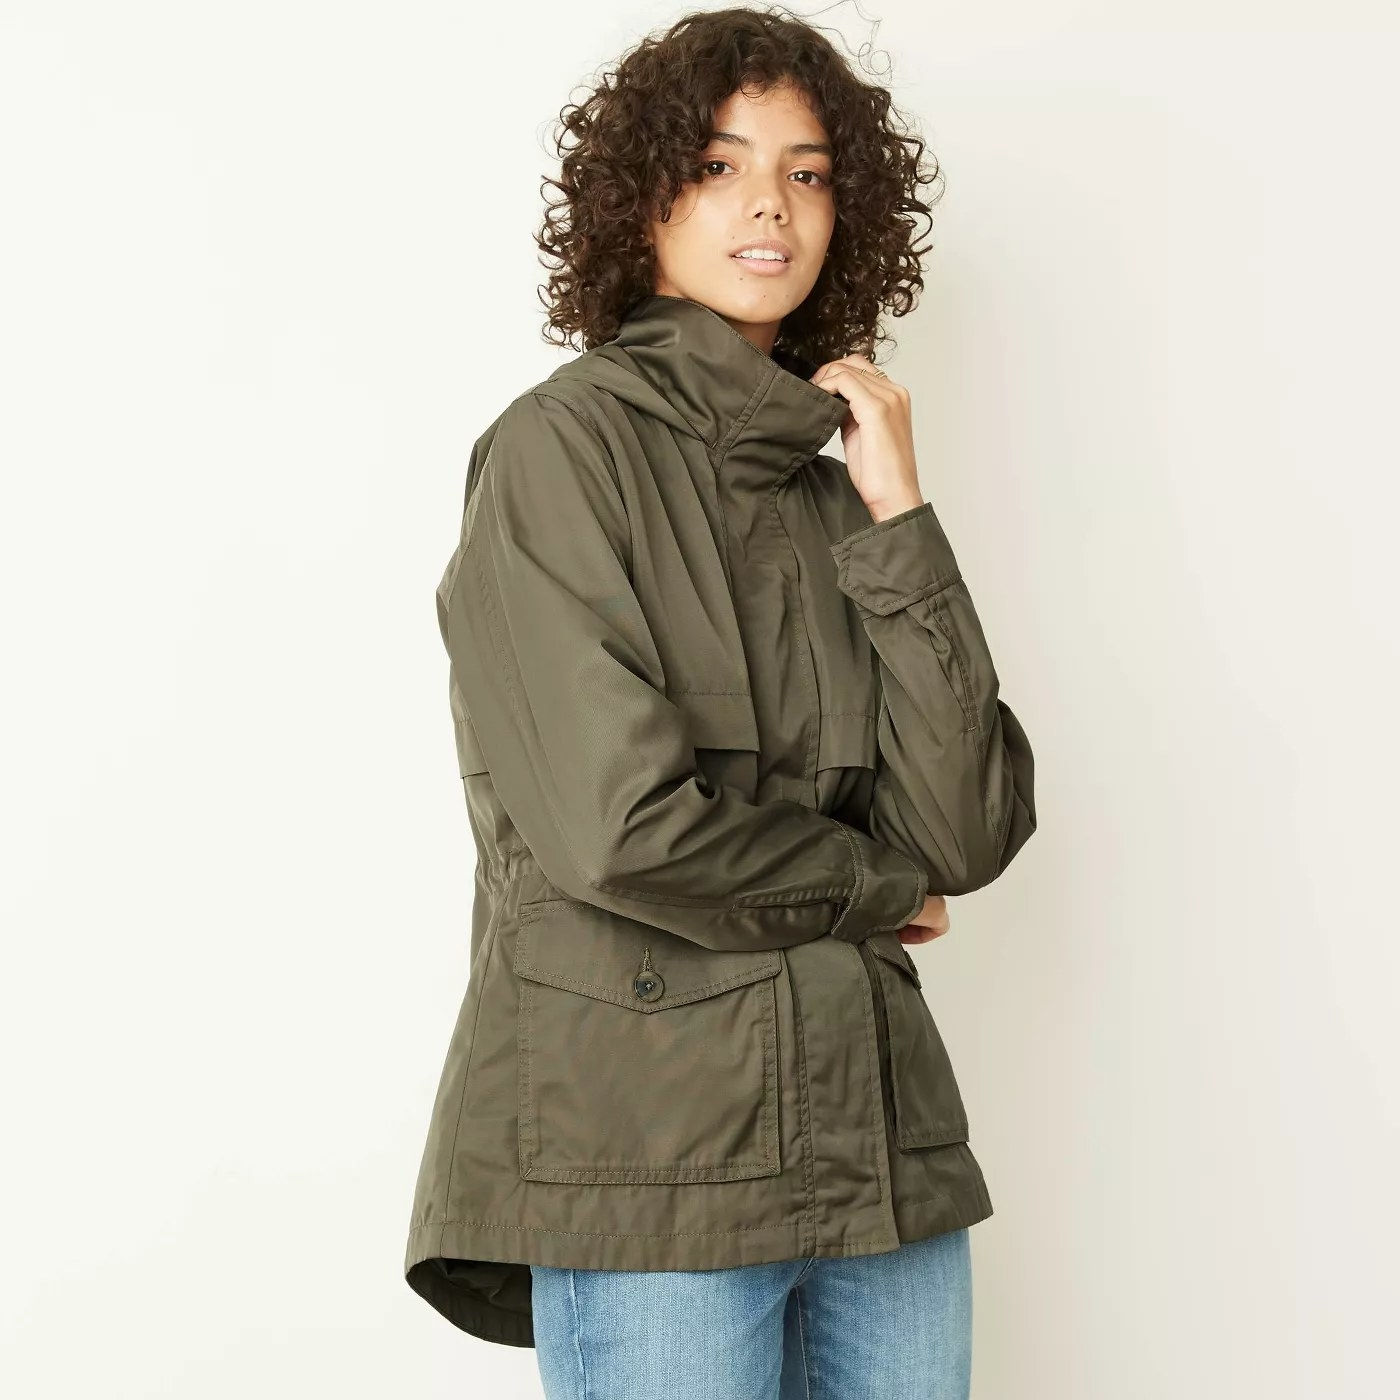 A model wearing a zipped-up rain jacket with a high neck and large, buttoned pockets